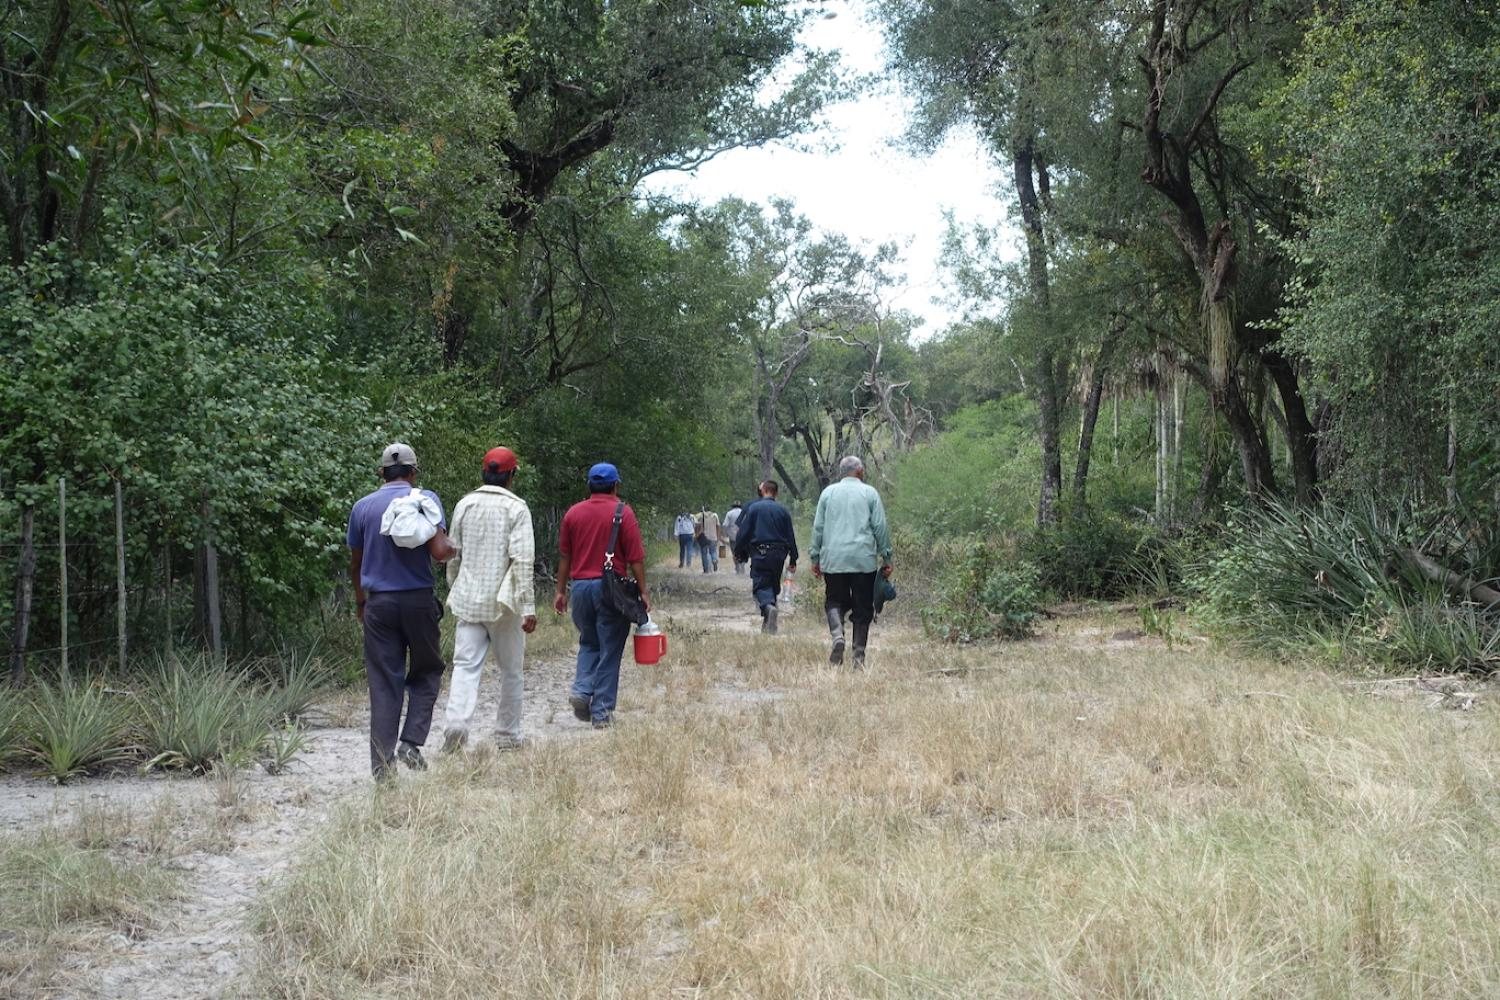 People walking a trail on the Yakye Axa property